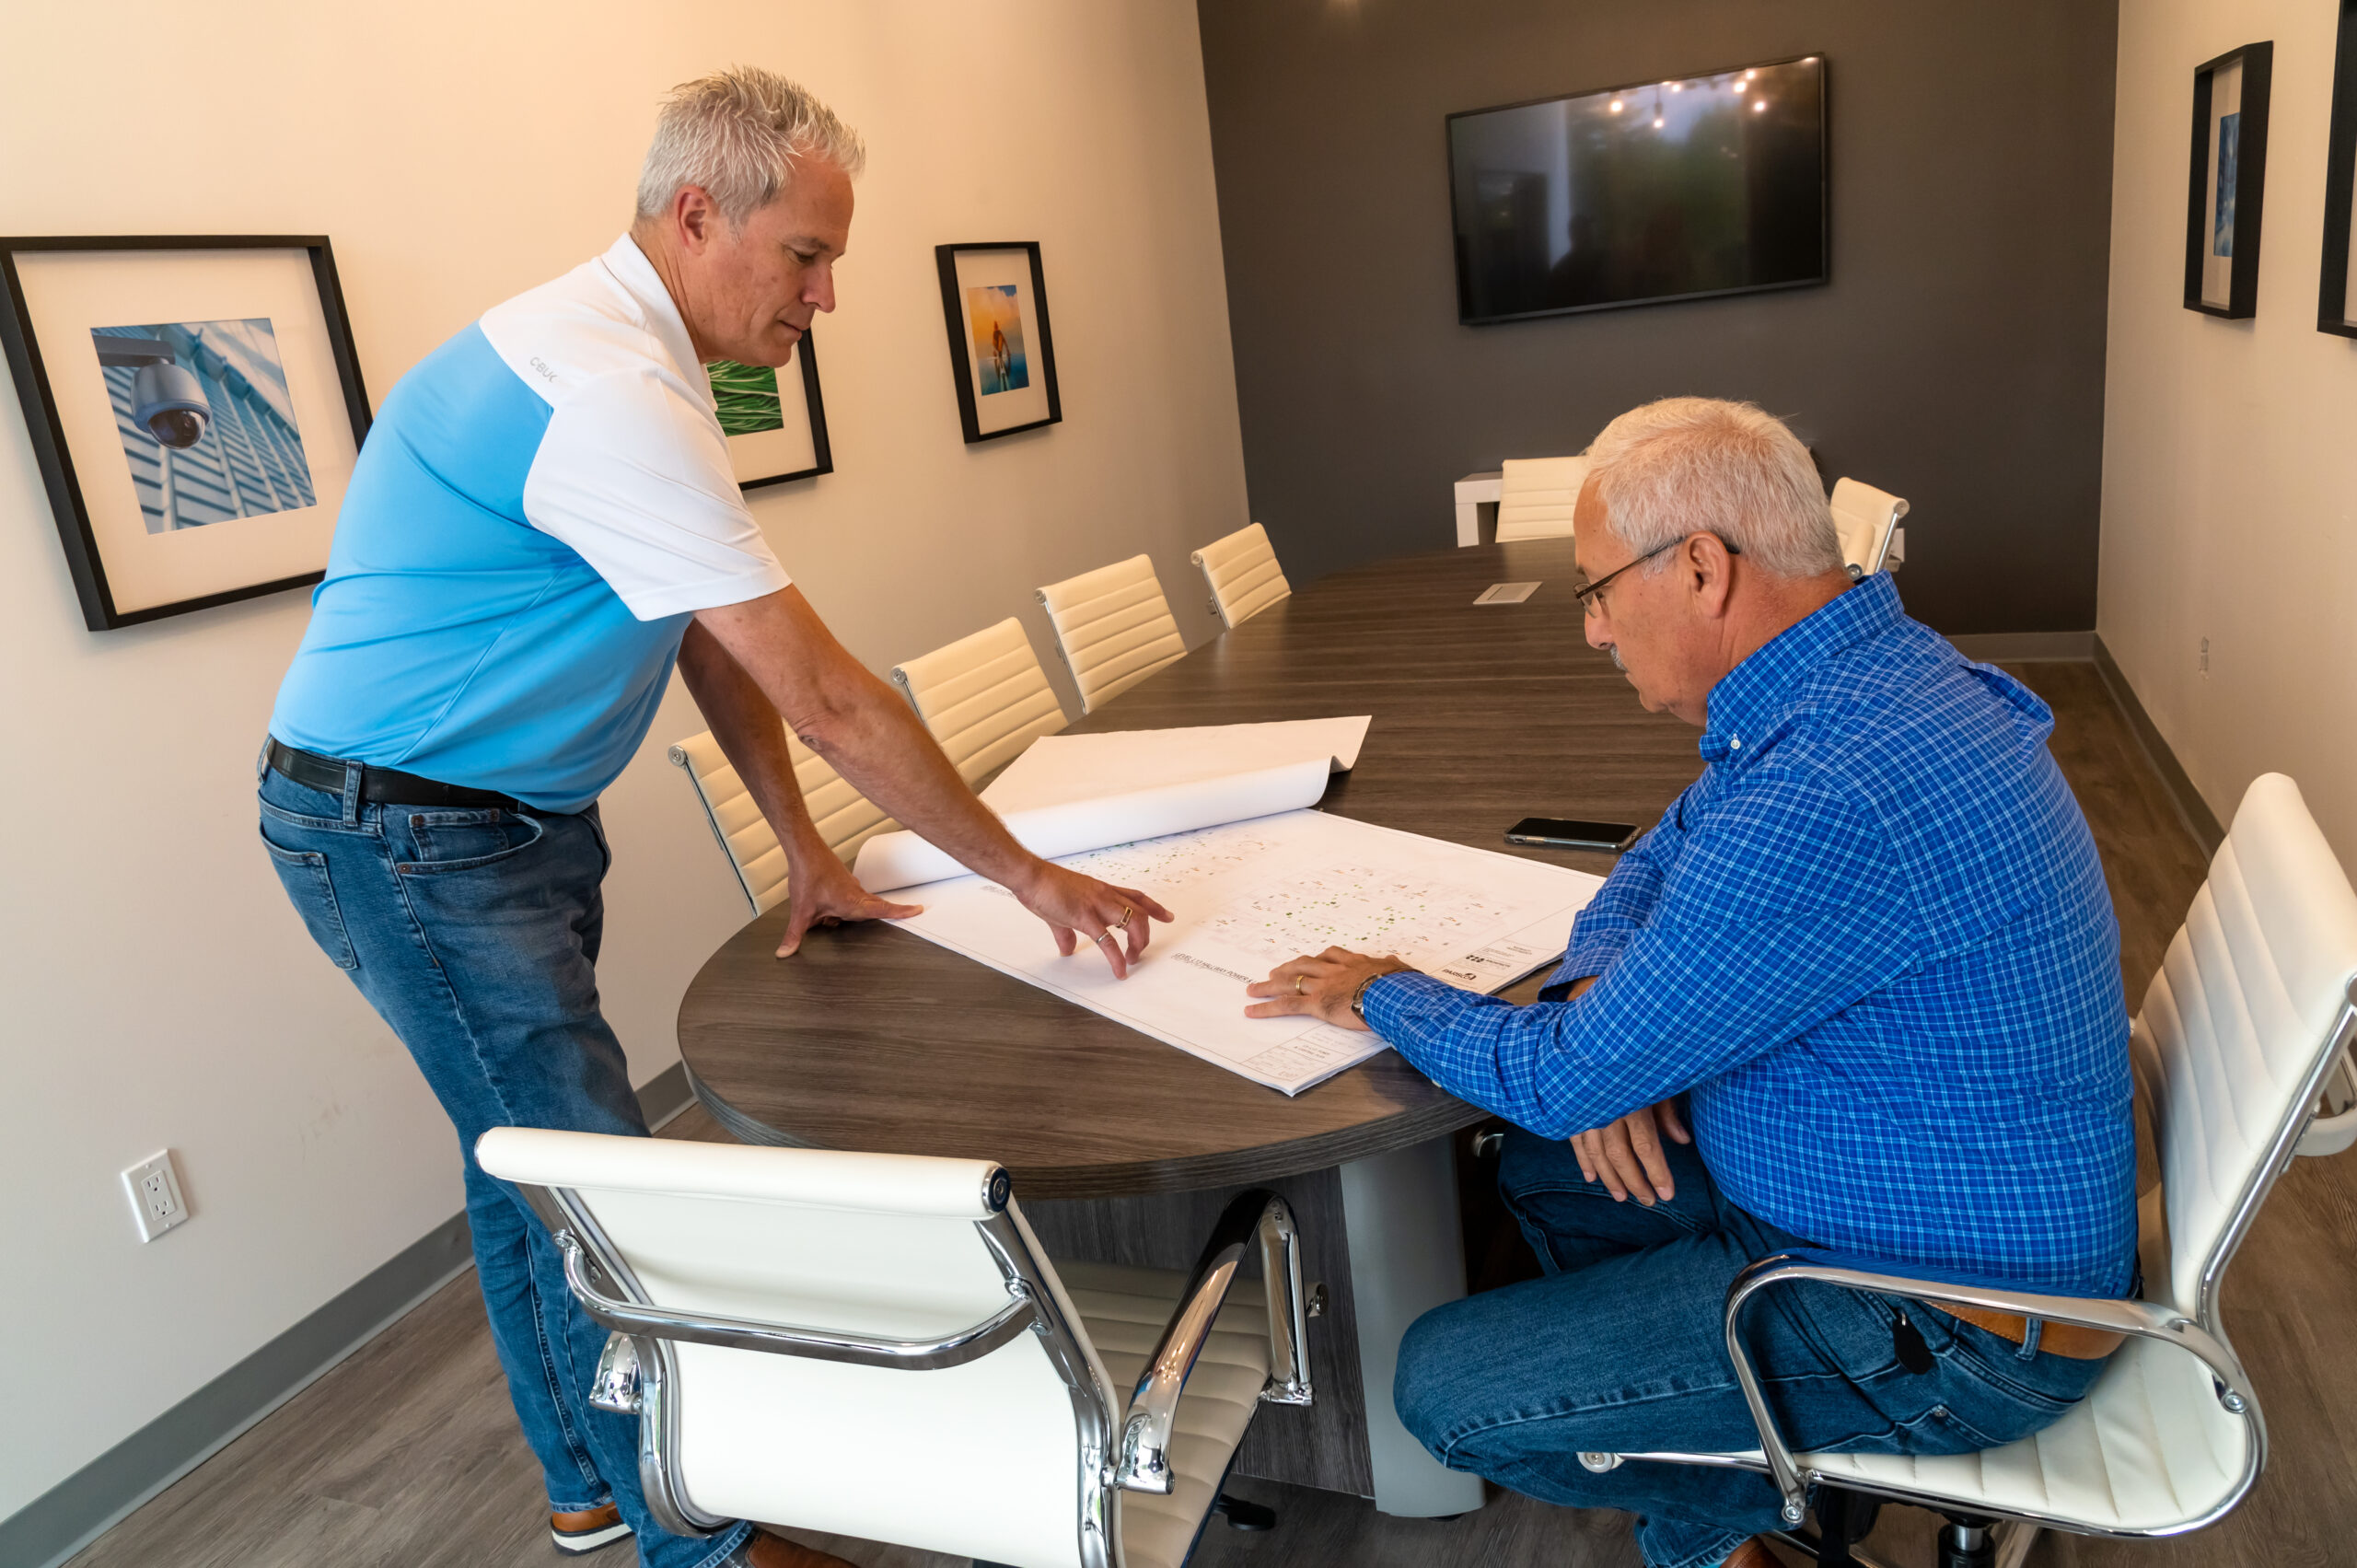 PNL Electrical Contracting Looking Over Plans For a New Construction